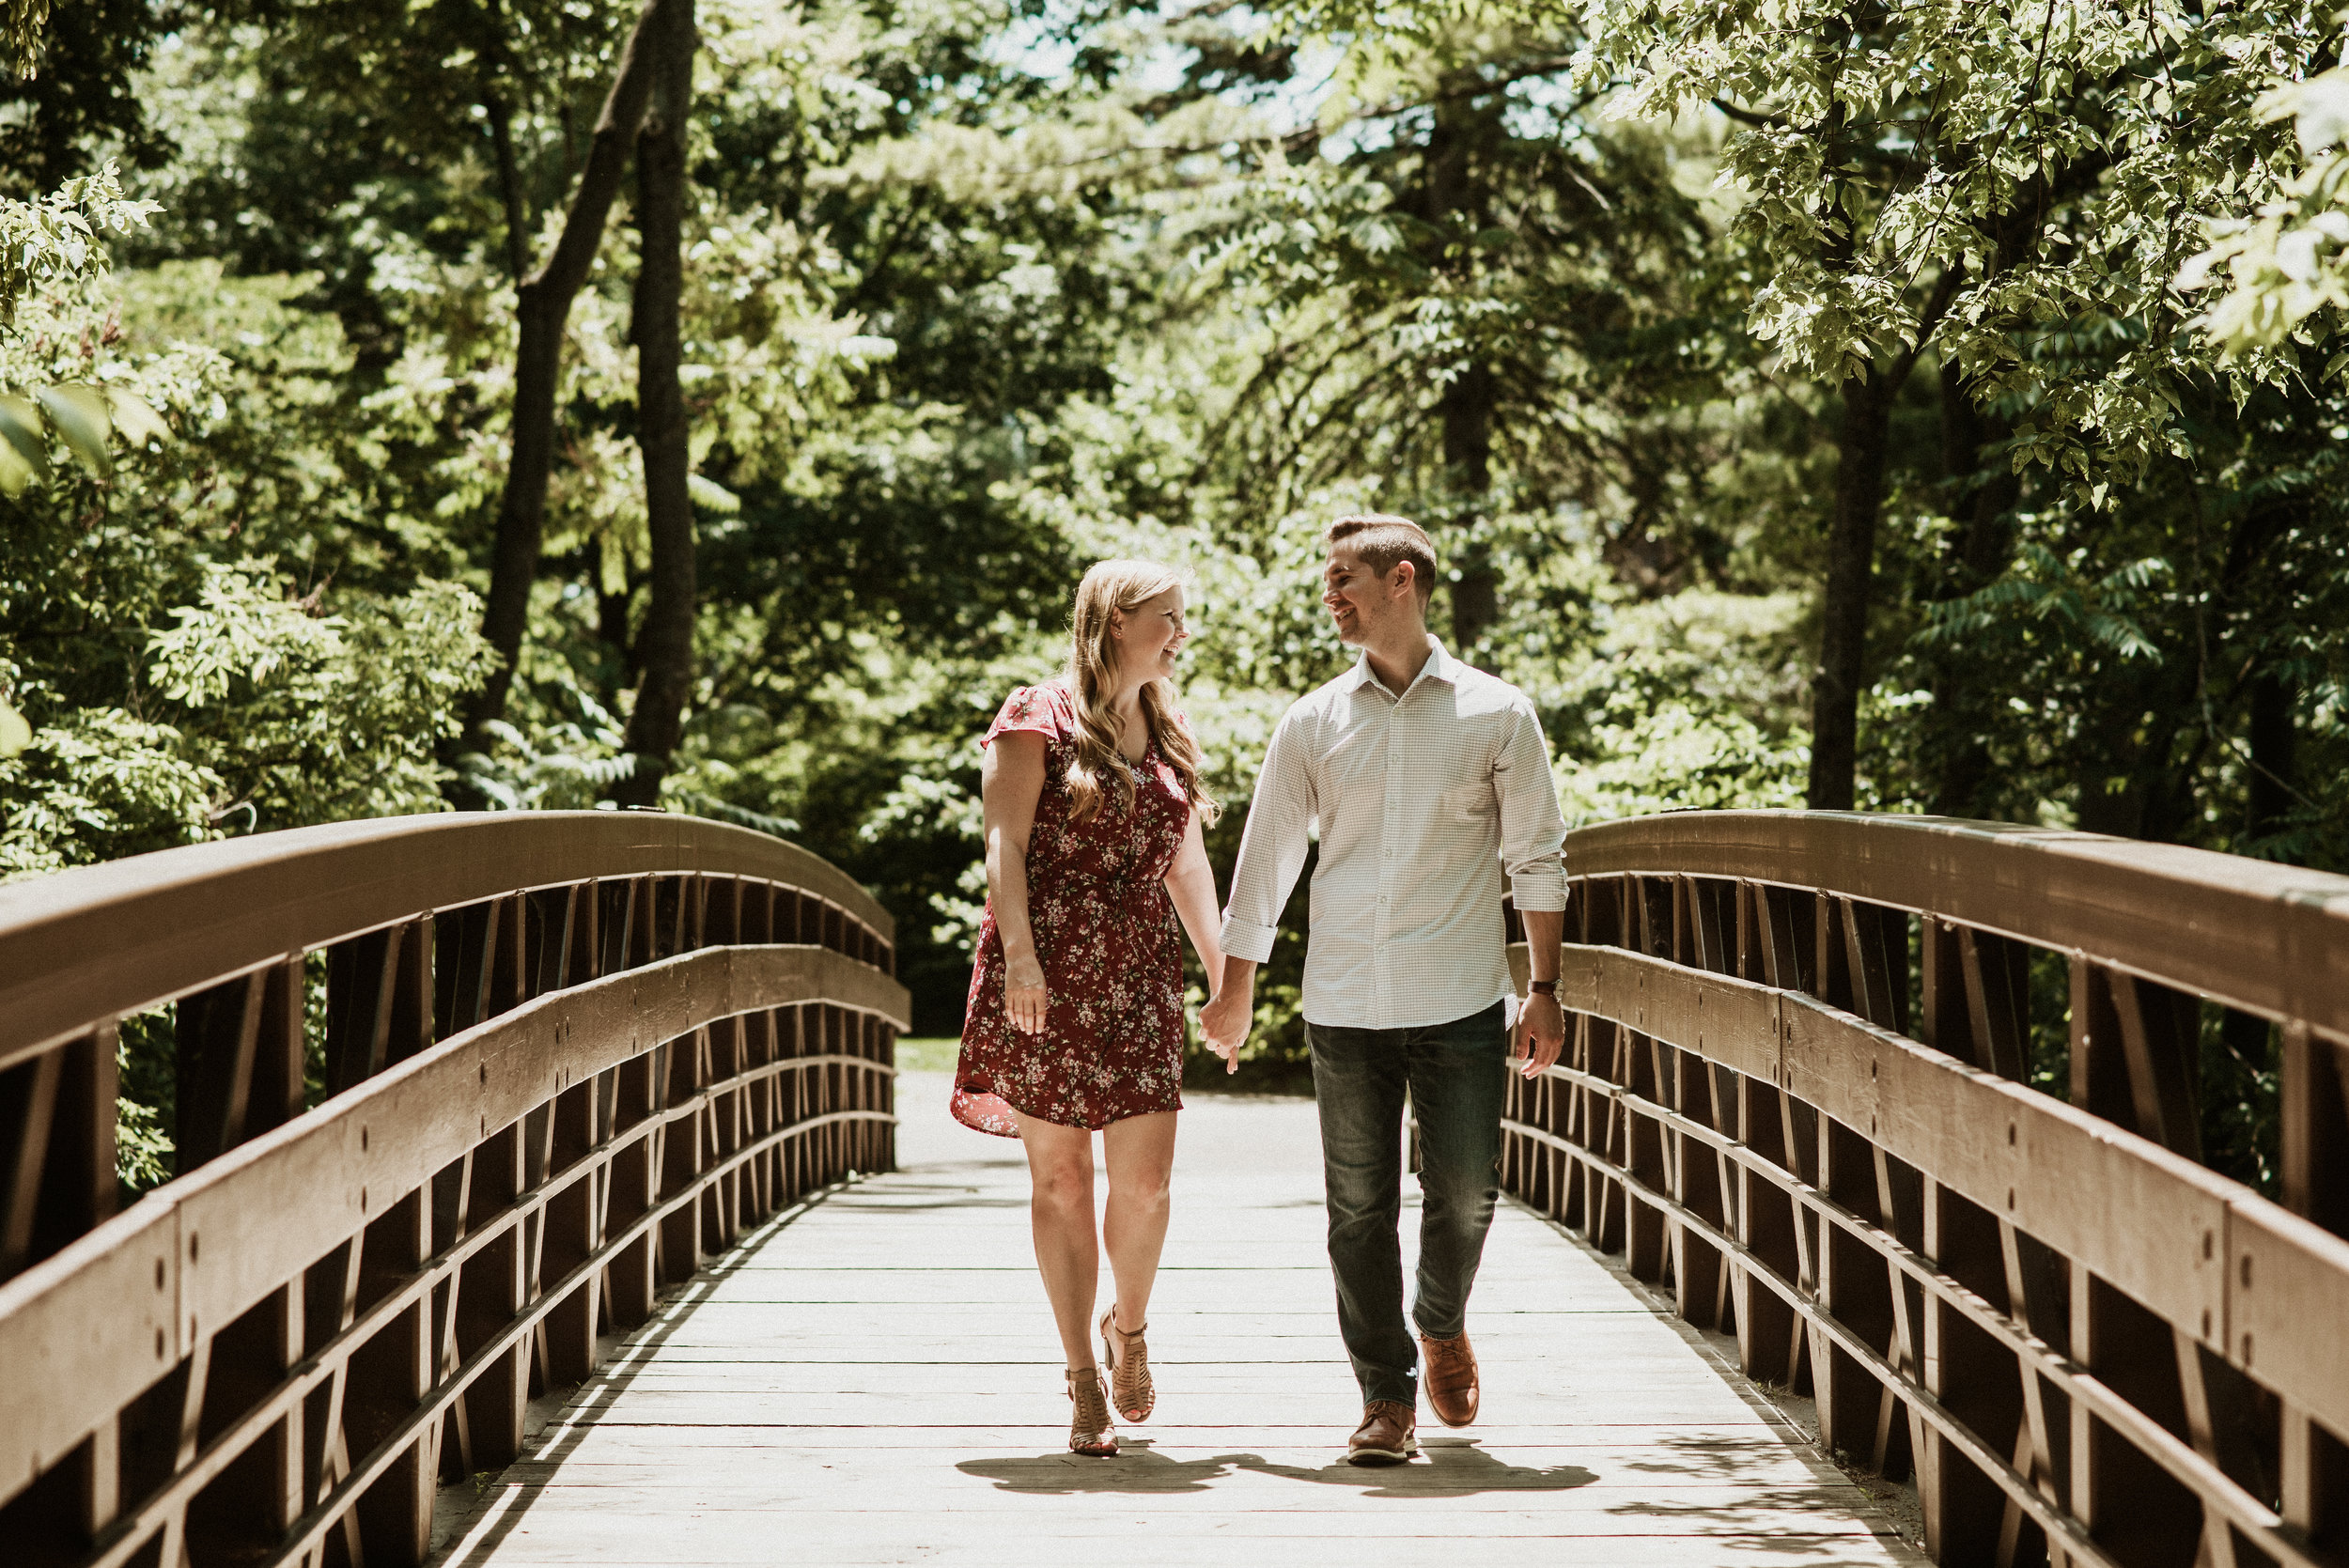 Emily and Brett - Hot Summer Days | Moser Tower & Naperville Riverwalk Engagement Session | Naperville, IL | Chicago Wedding Photogapher